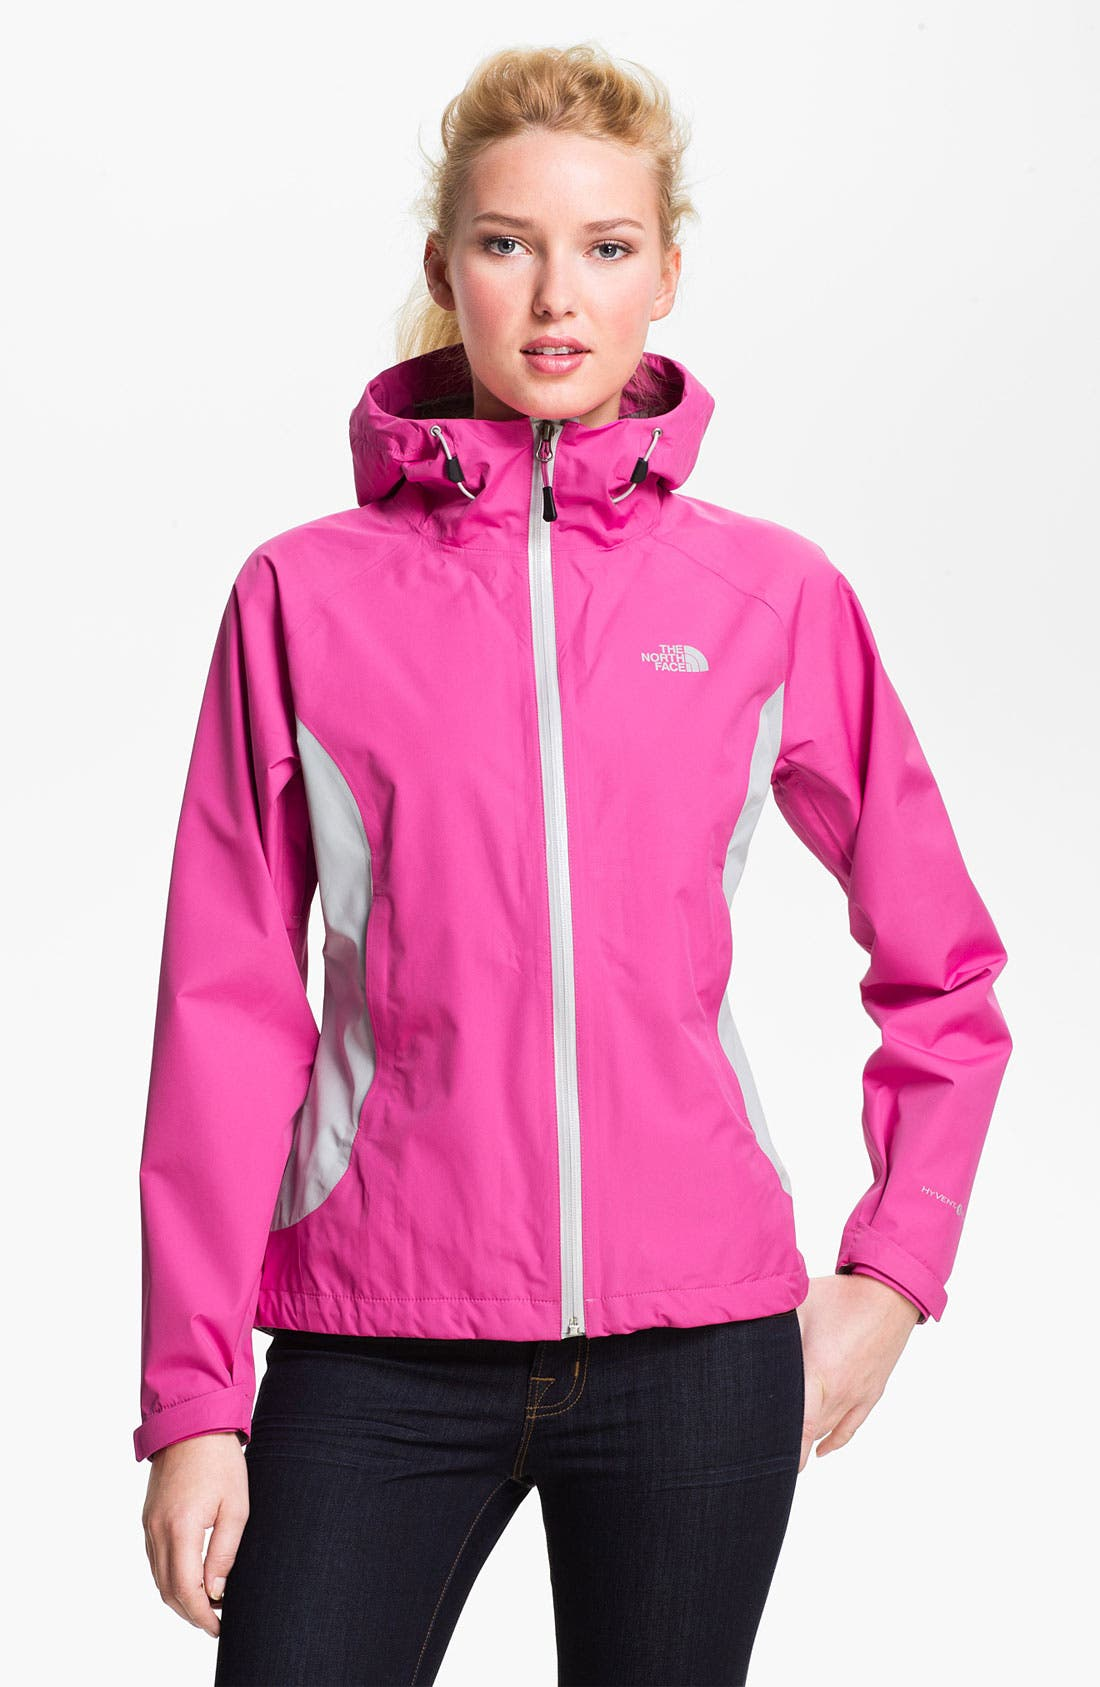 Alternate Image 1 Selected - The North Face 'RDT' Rain Jacket